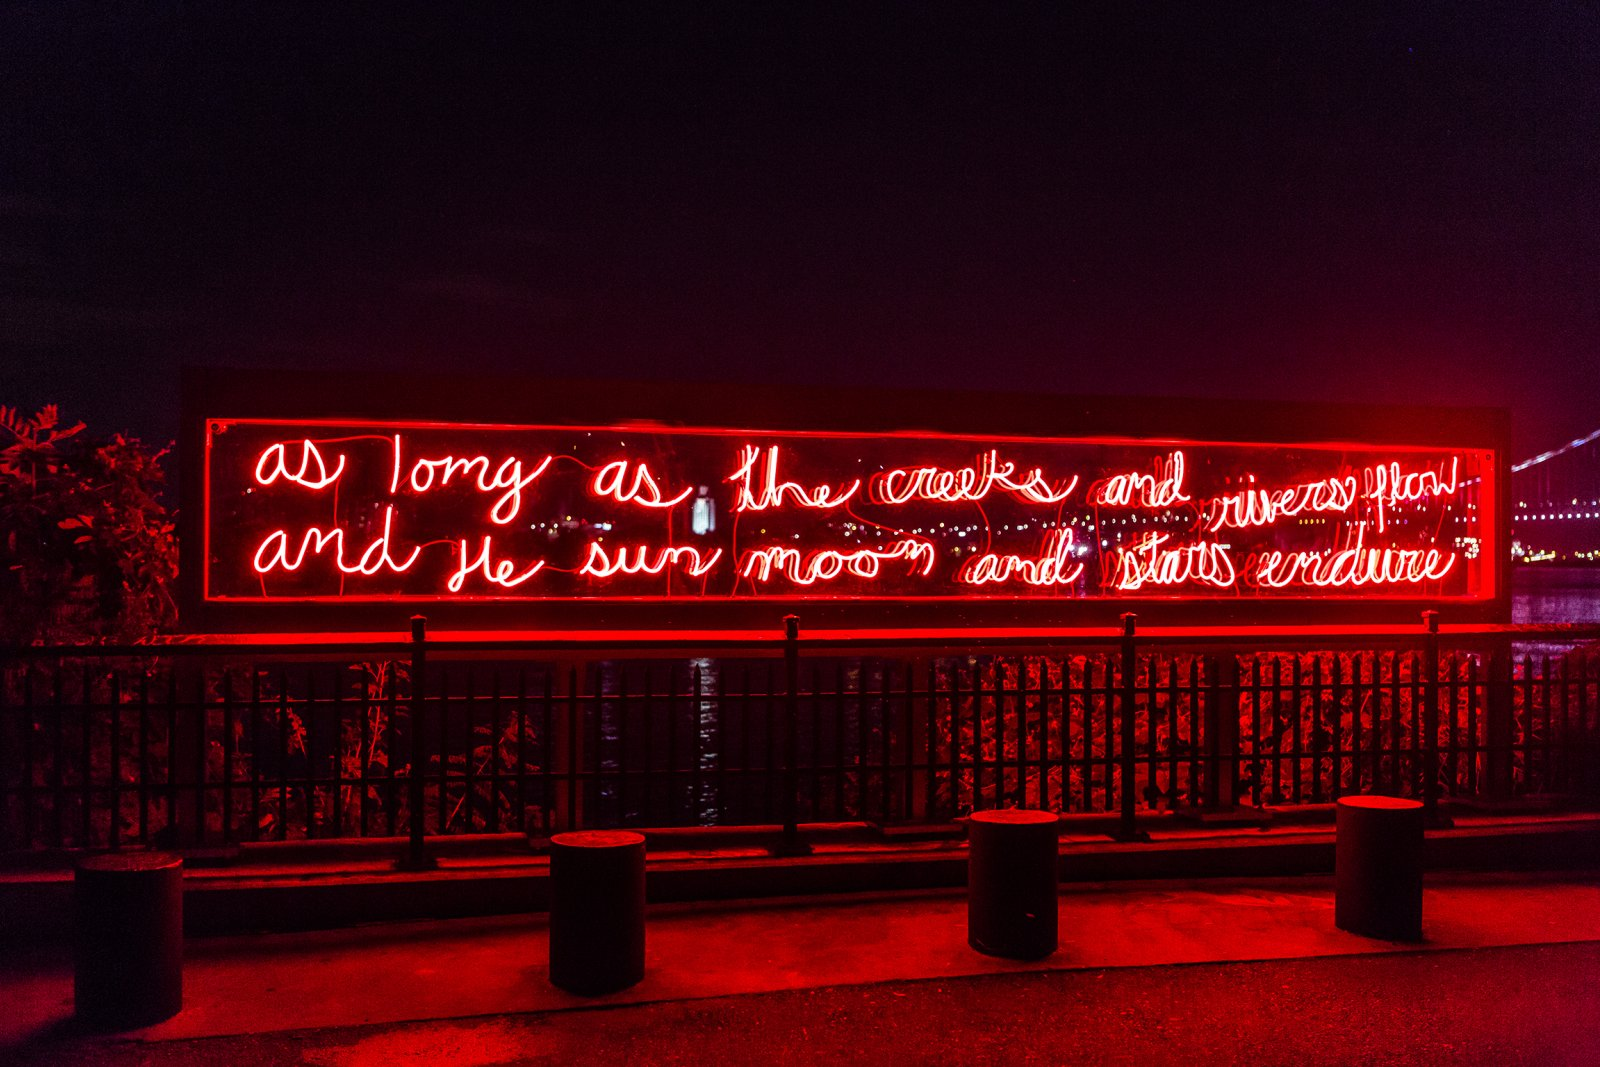 Duane Linklater, In Perpetuity, 2017, neon, transformers, aluminum, polycarbonate, and handwritten text by Sassa Linklater, 59 x 360 x 9 in. (150 x 914 x 23 cm). Installation view, Monument Lab: A Public Art and History Project, Mural Arts Philadelphia at Penn Treaty Park, Philadelphia, 2017